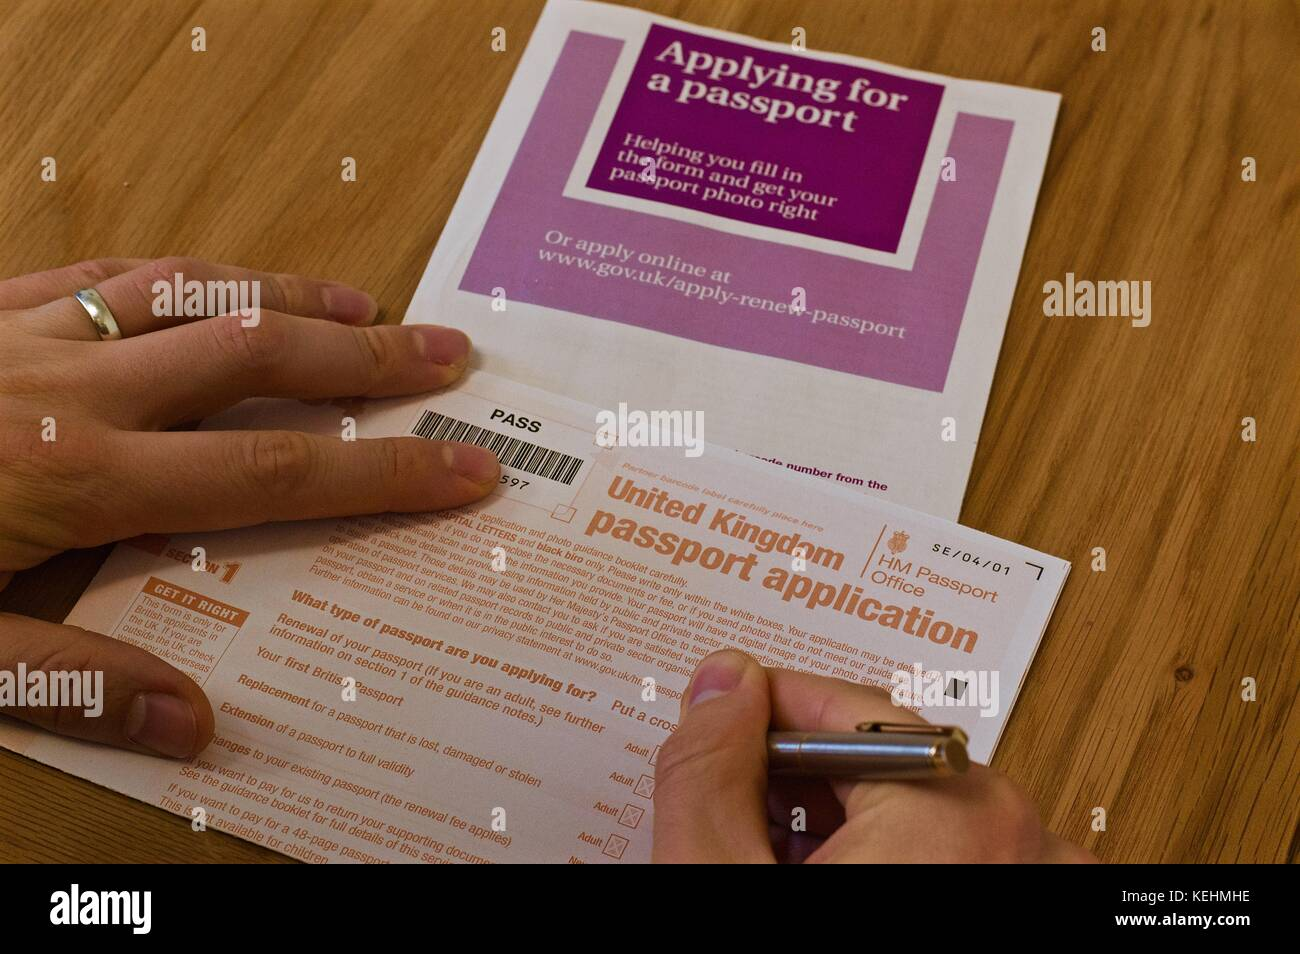 Passport application form stock photos passport application form view of mans hands filling out uk passport application form on table with instructional booklet falaconquin